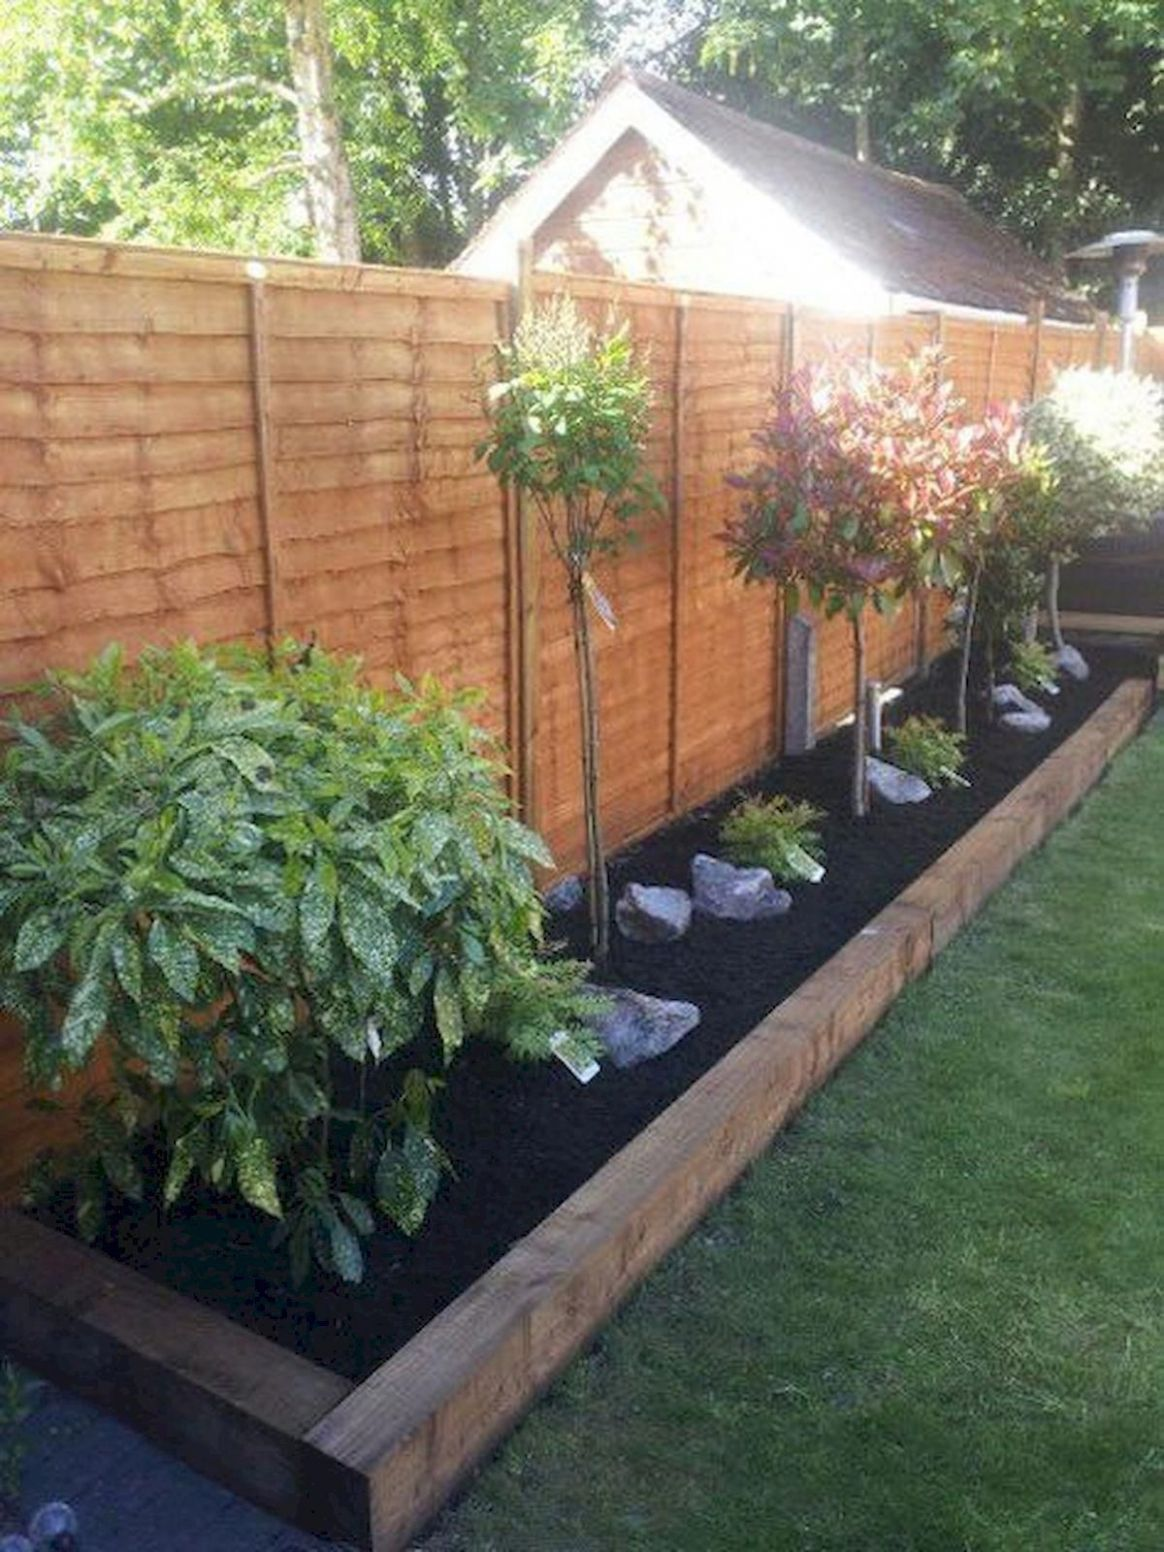 Landscaping For Your Location - How To Choose The Right Plants ..